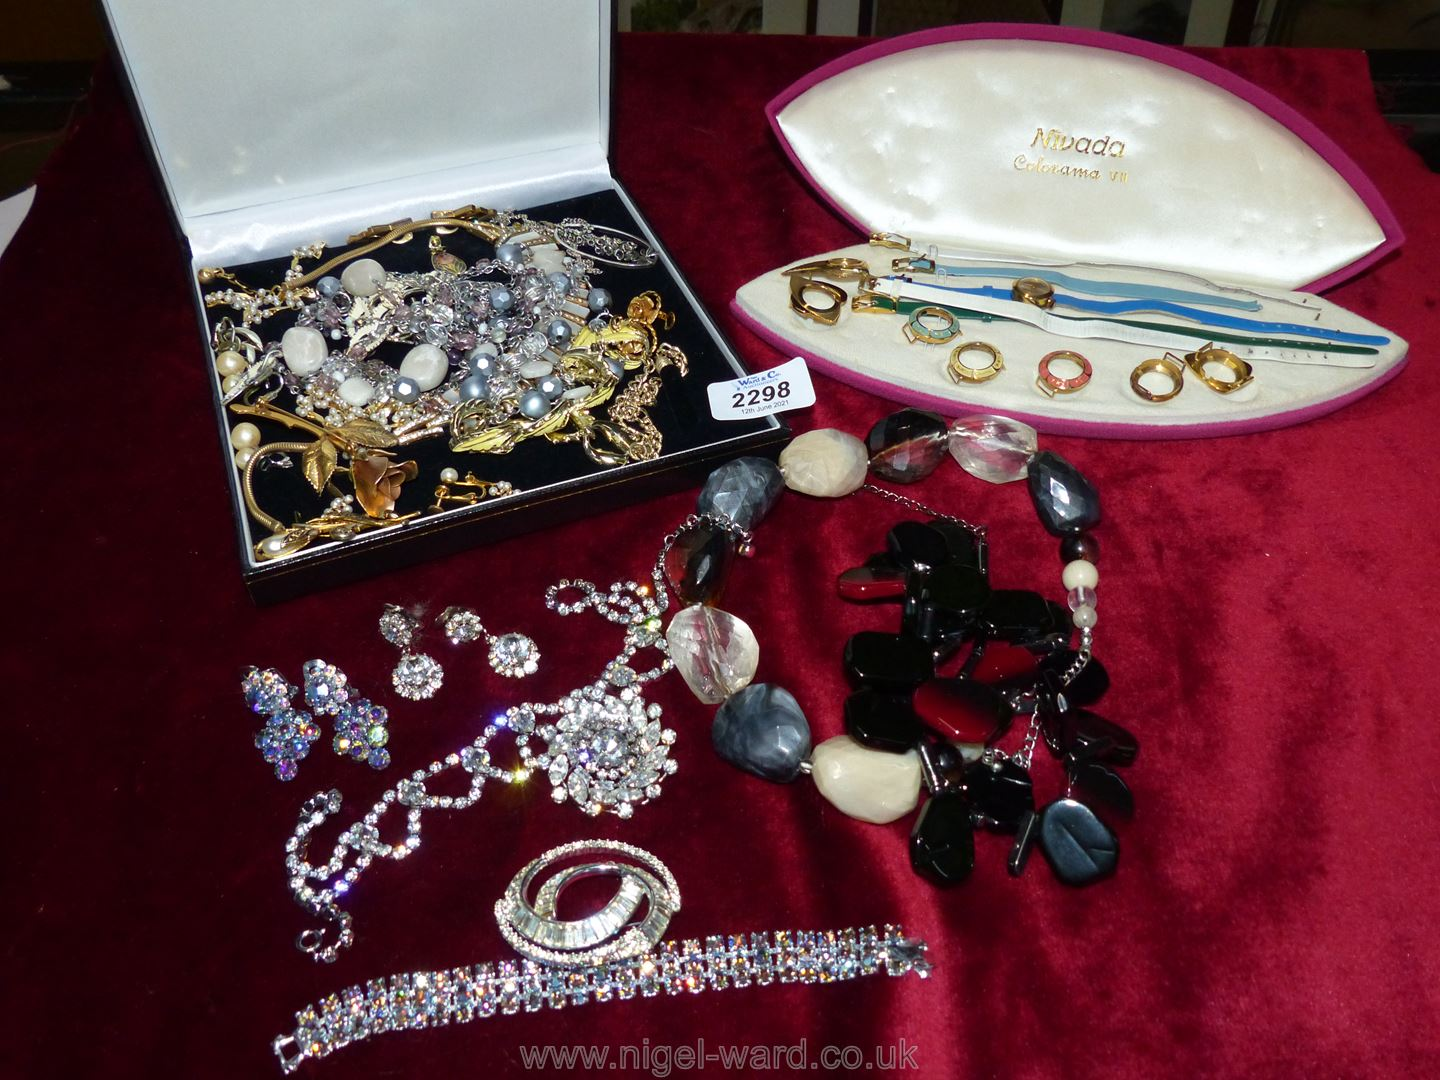 A quantity of costume jewellery including Nivada changeable wristwatch set, silver necklace, etc.